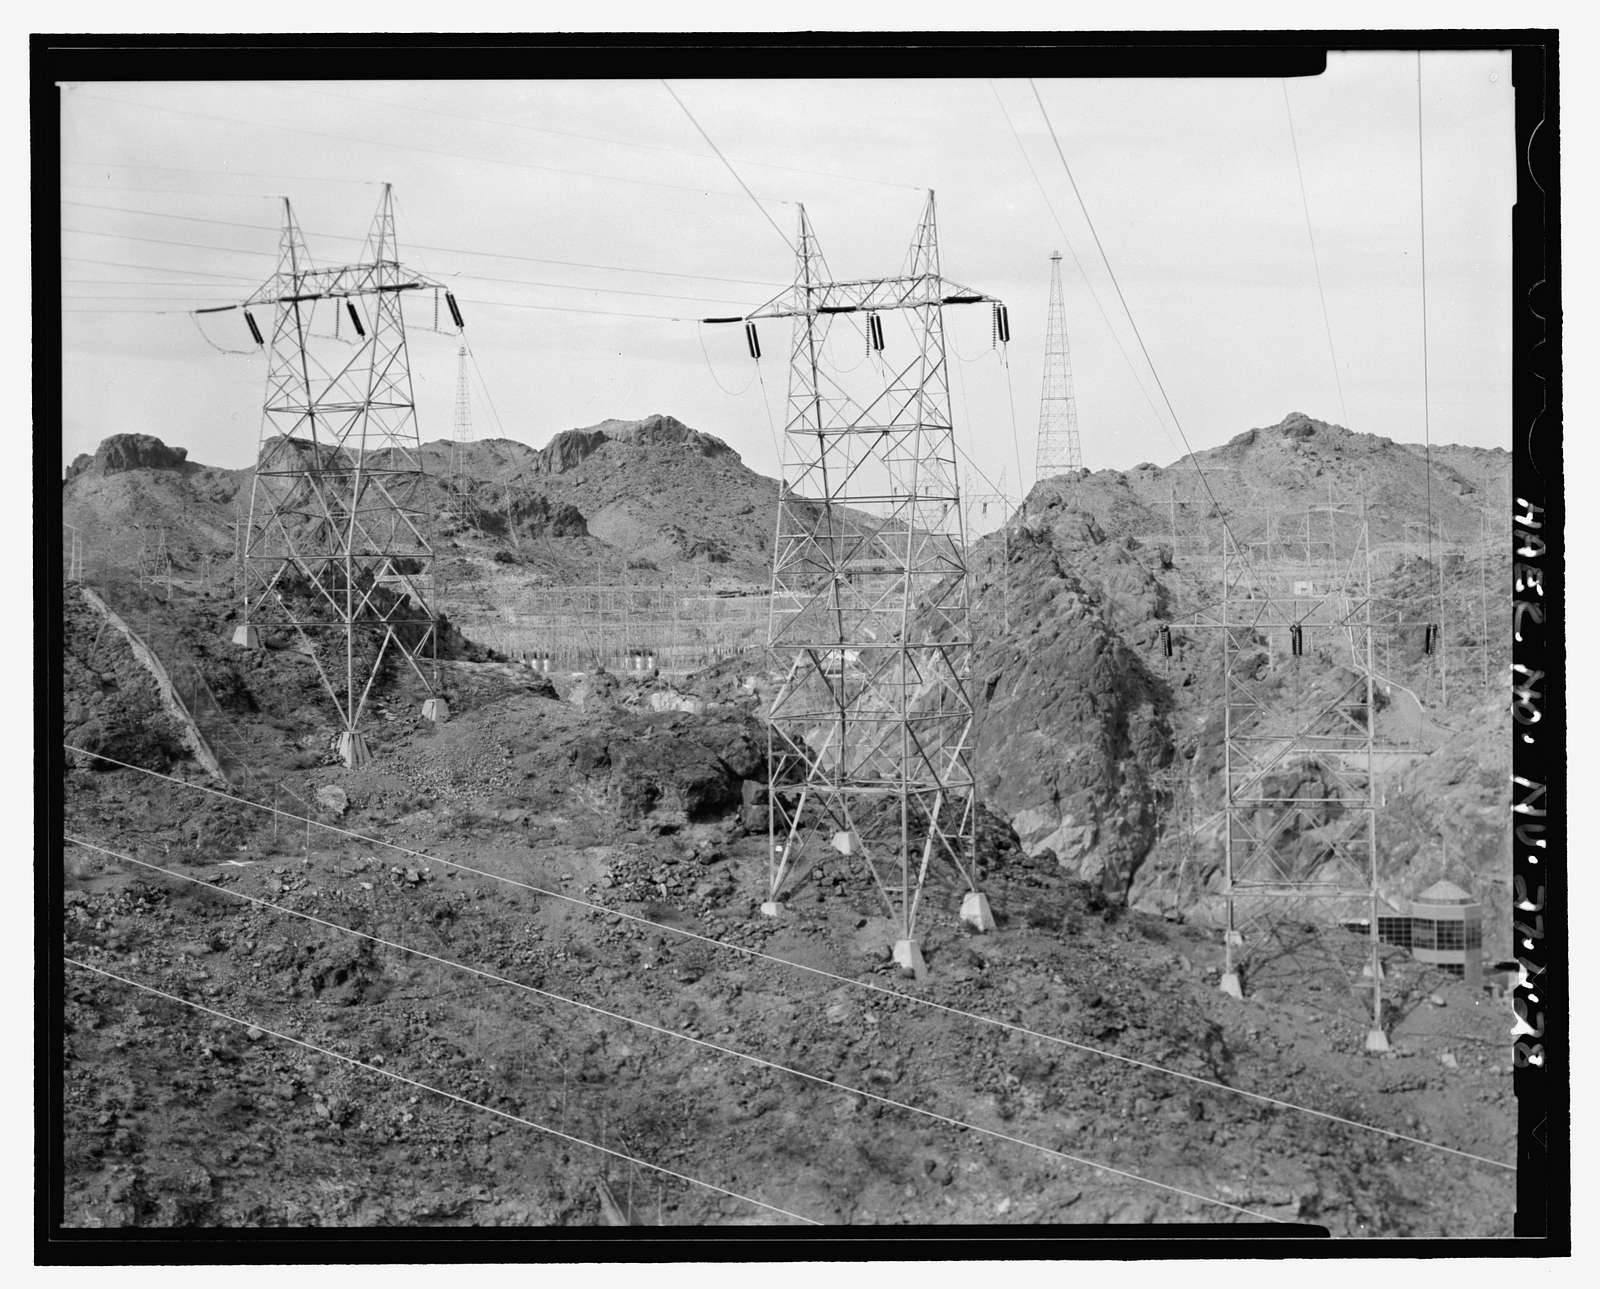 Hoover Dam, Circuits 1-15, U.S. Highway 93, Boulder City, Clark County, NV